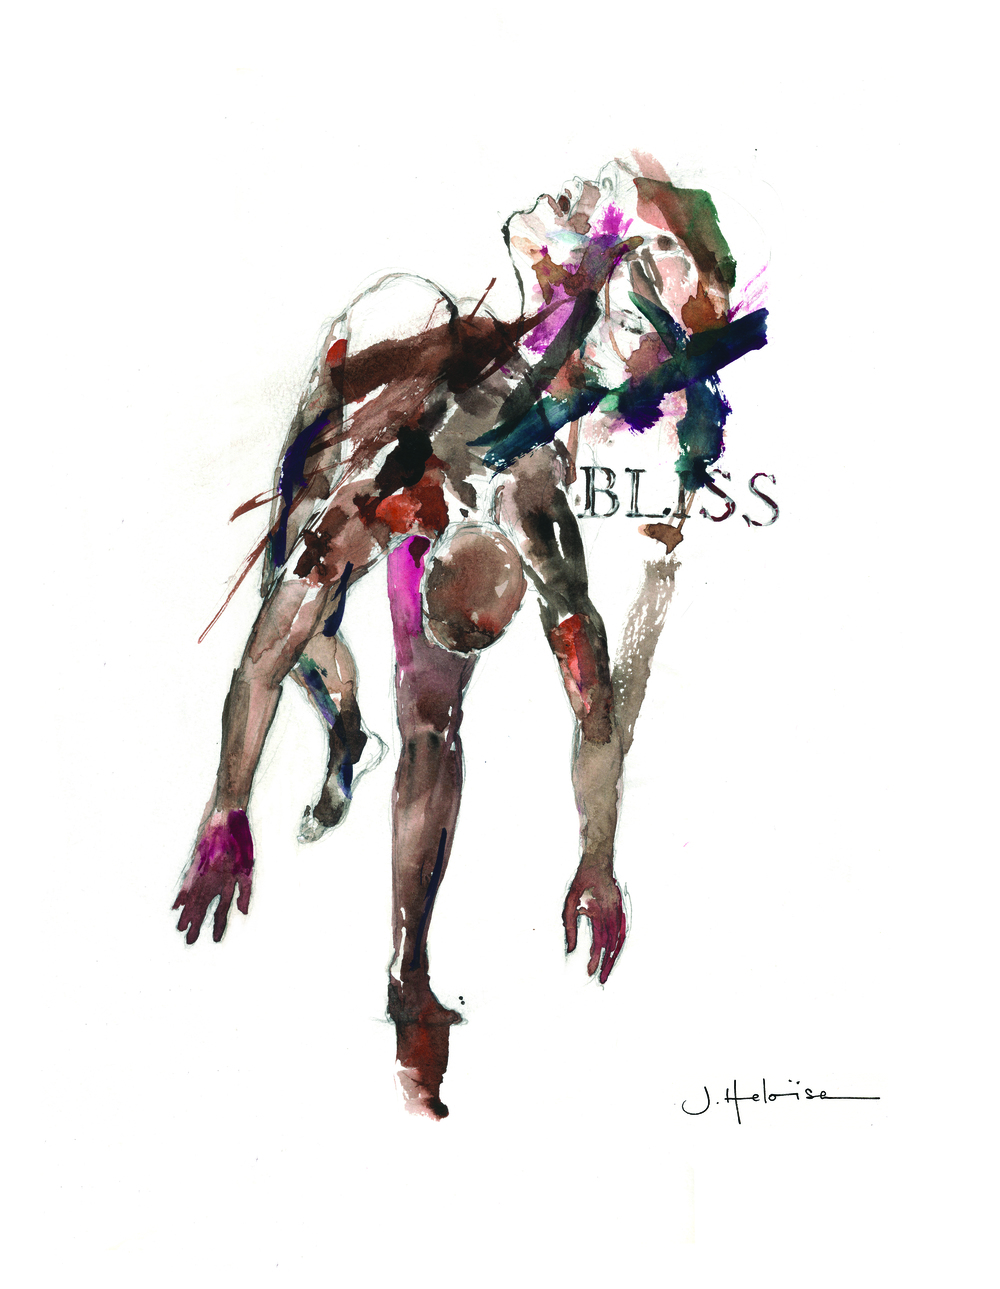 Bliss, 2013 (From Fashion Faces series)